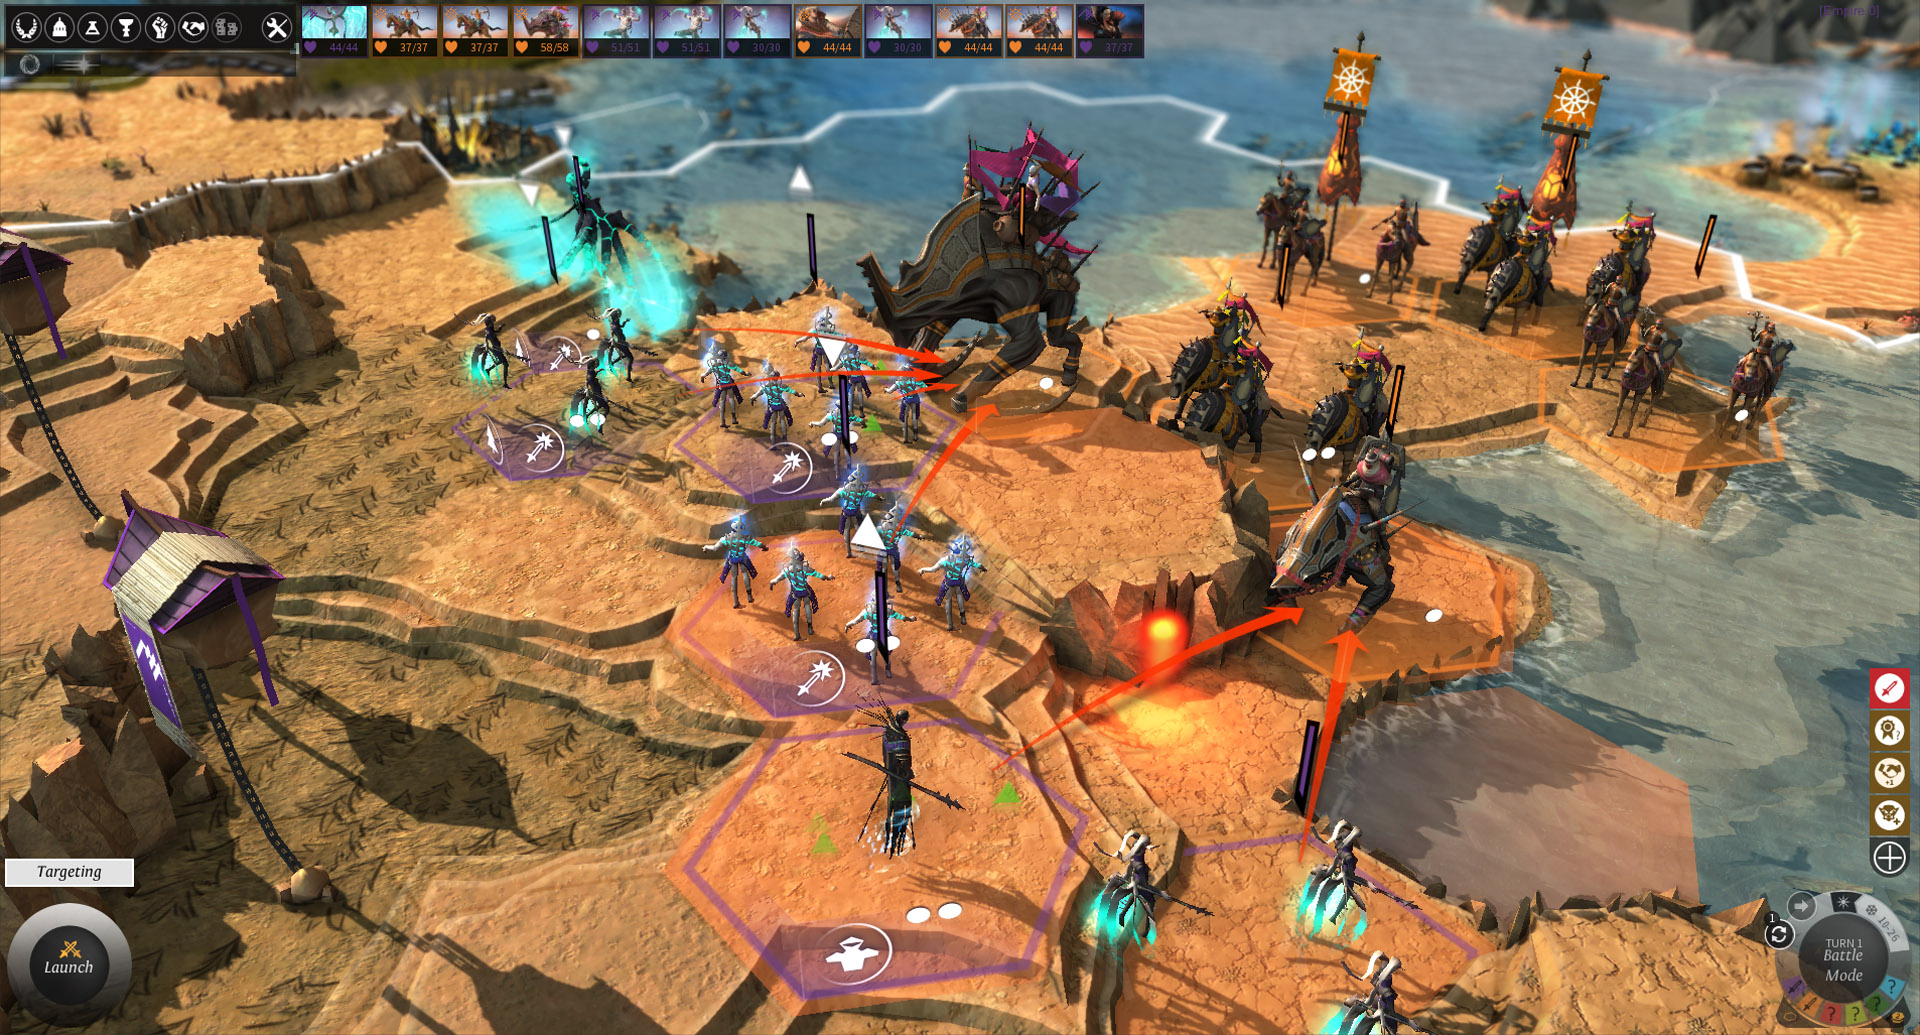 Endless Legend seeks the perfect imbalance to keep players exploring and exterminating